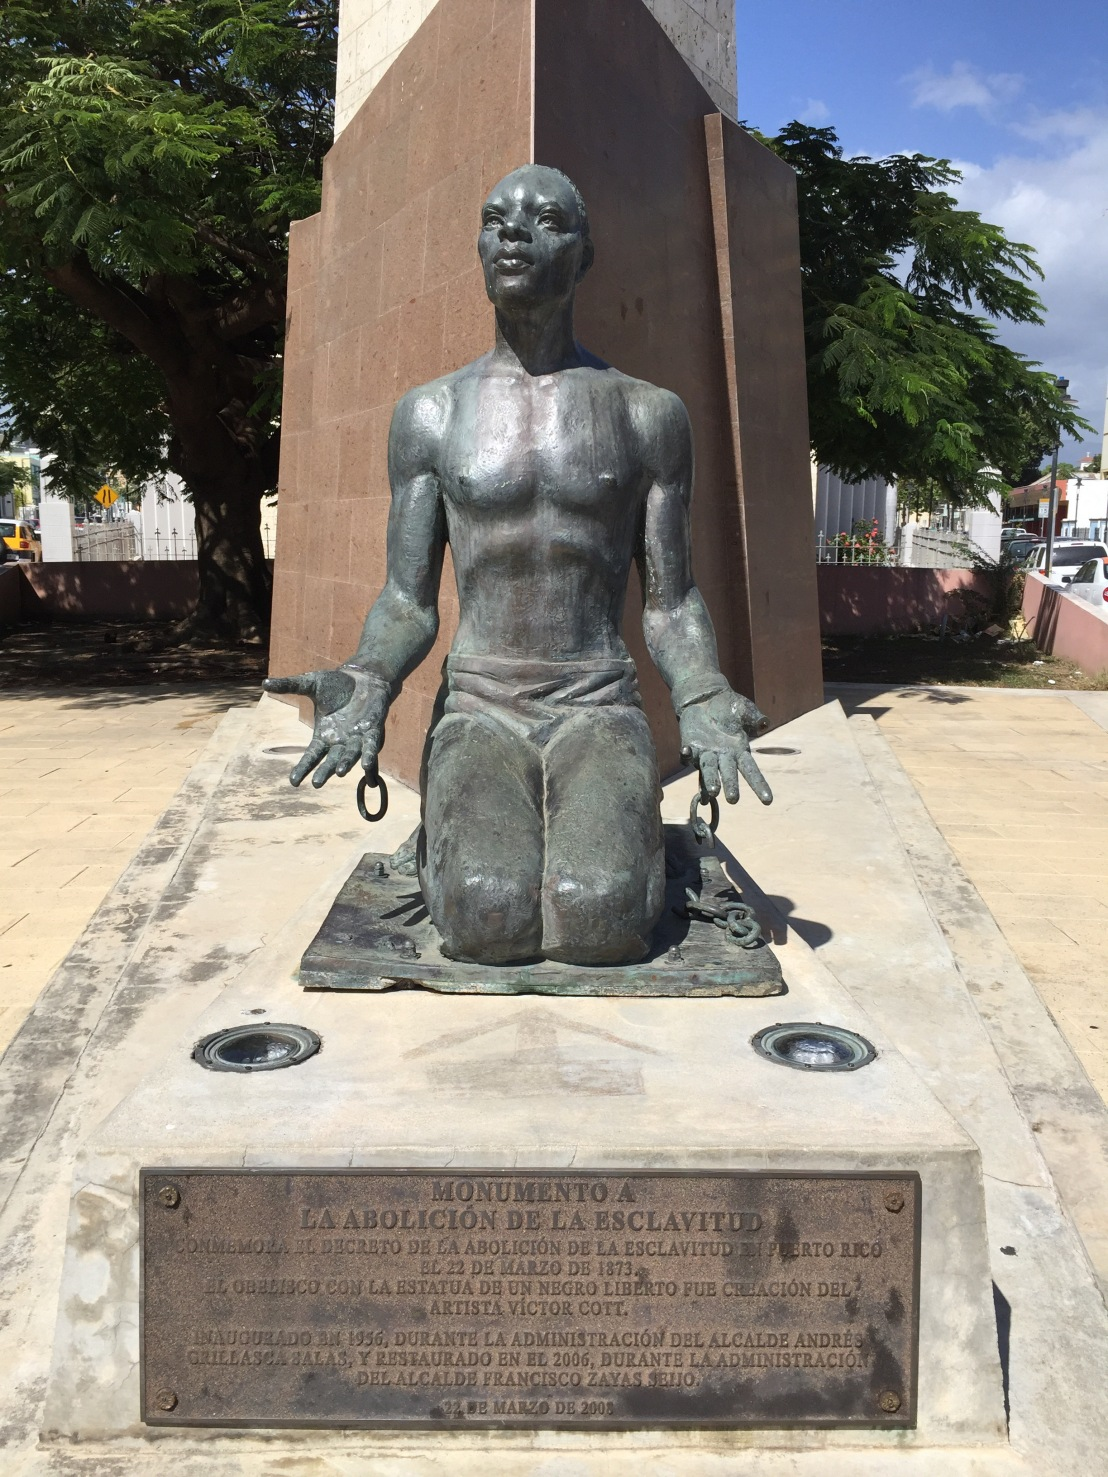 Statue honoring the abolition of slavery